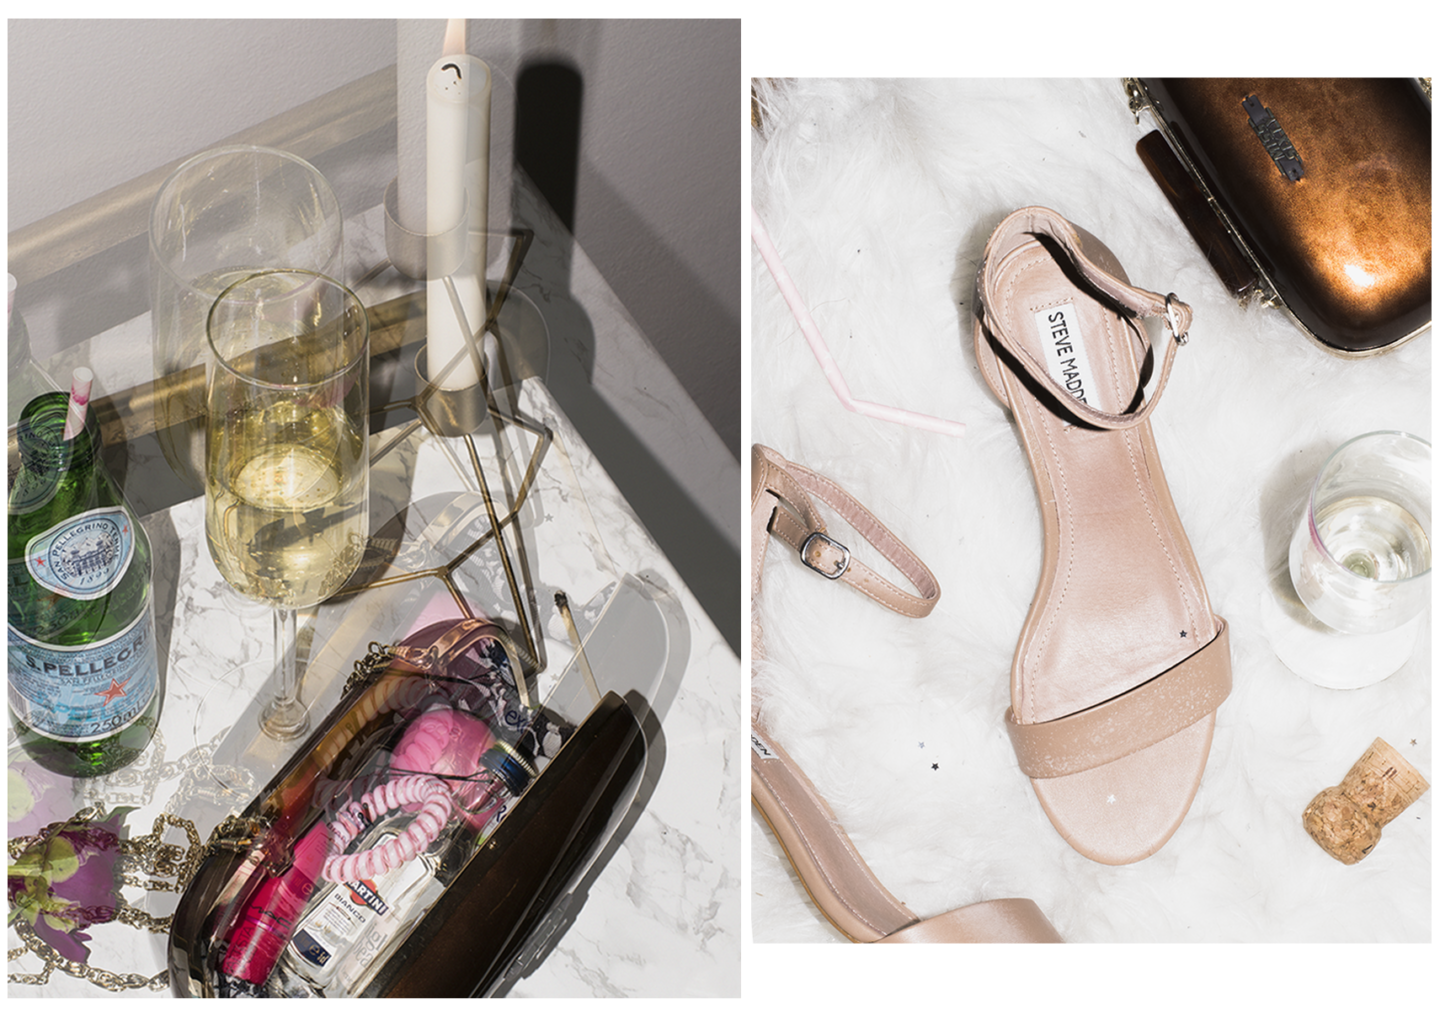 Steve Madden Ireene nude sandals with champagne glass and Miss Sixty bronze clutch